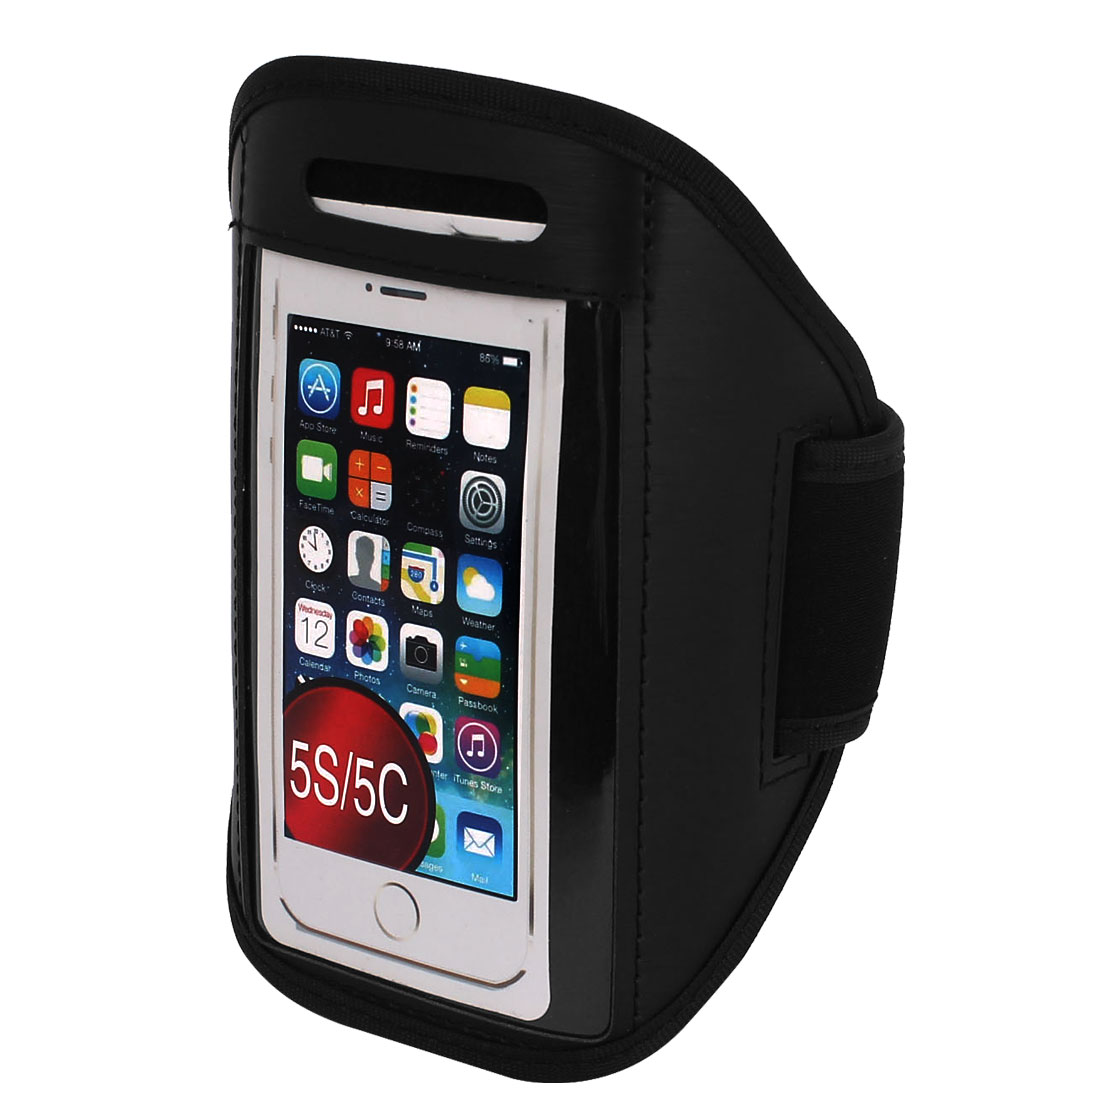 Sports Running Jogging Gym Armband Case Cover Holder Black for iPhone 5 5C 5S